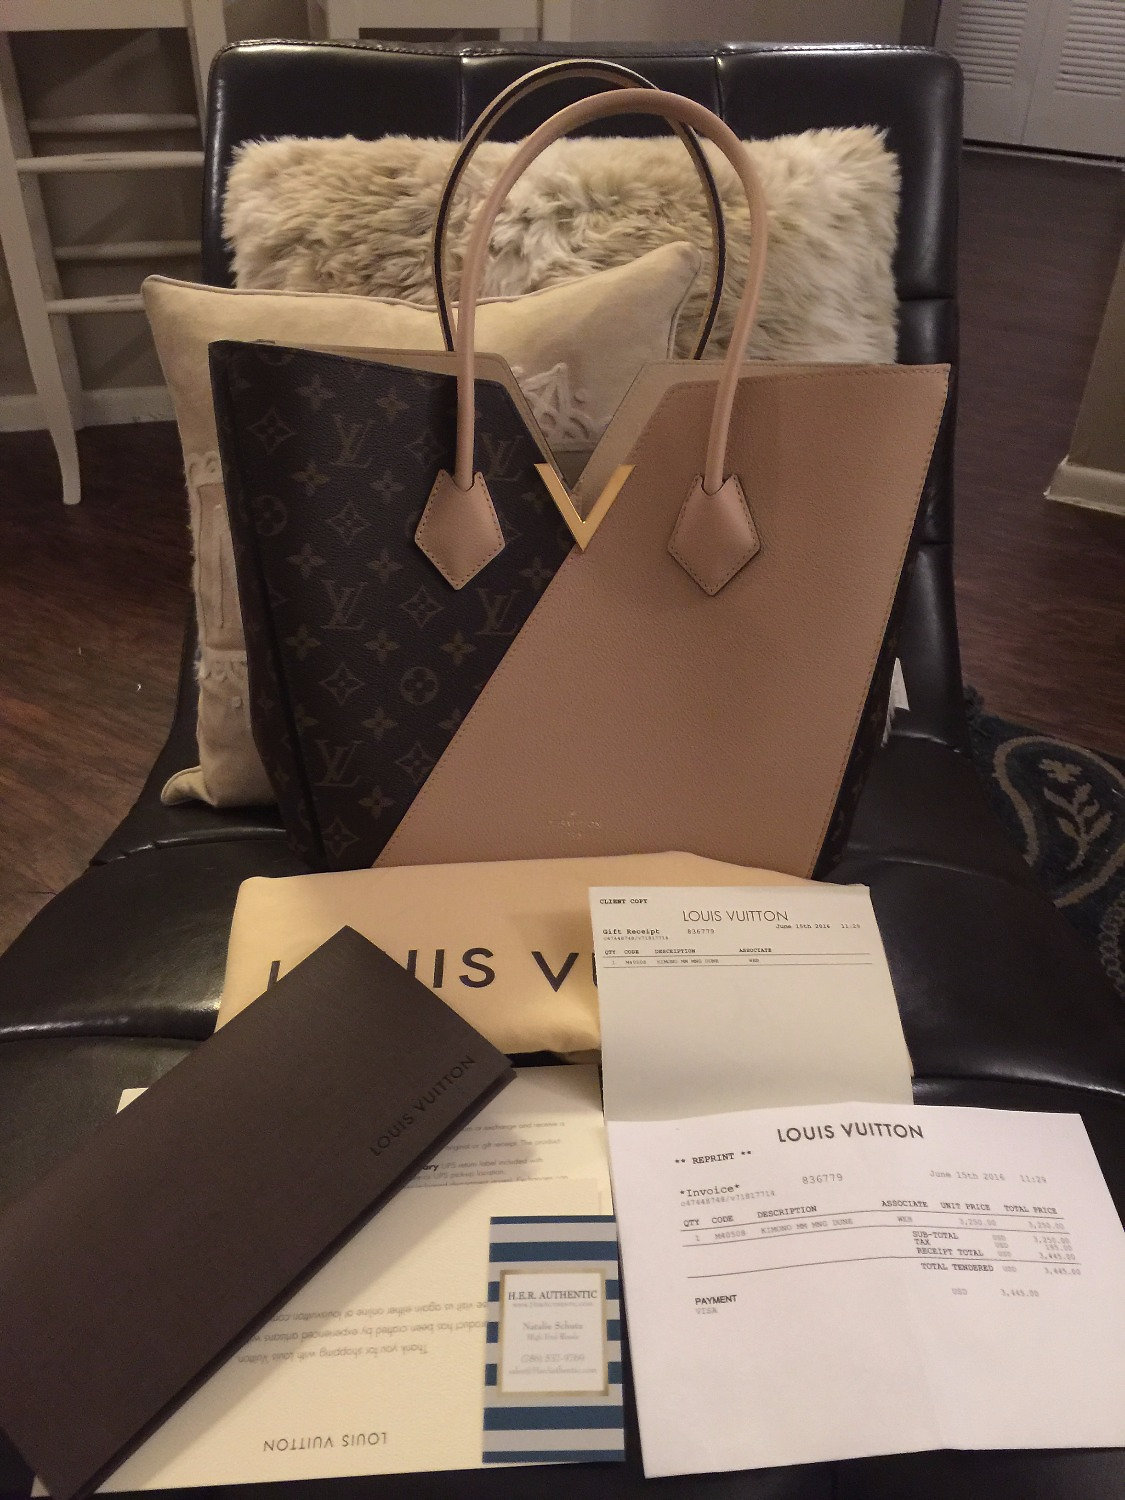 Invoice Management System Her Authentic High End Resale Of  Authentic Louis Vuitton  Rendered Invoice Pdf with A Purchase Invoice Is A Document That Excel This Was Just Purchased  Weeks Ago And Never Carried Comes Complete With  The Receipt Dust Bag And Receipt Holder Hardware Still Has The Plastic  On It Professional Invoices Template Excel